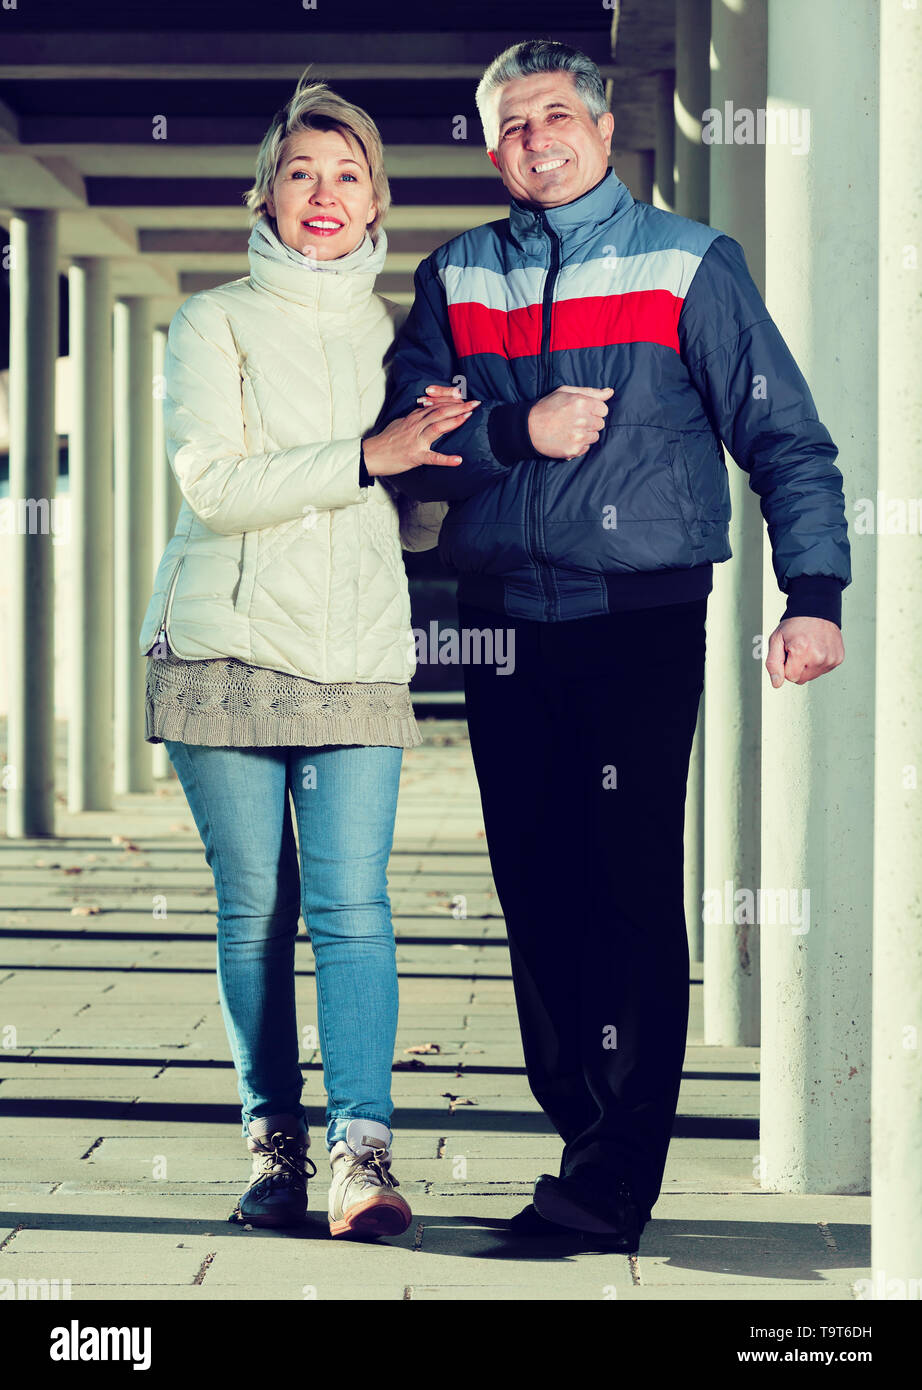 Positive aged couple walking along corridor fenced with columns - Stock Image